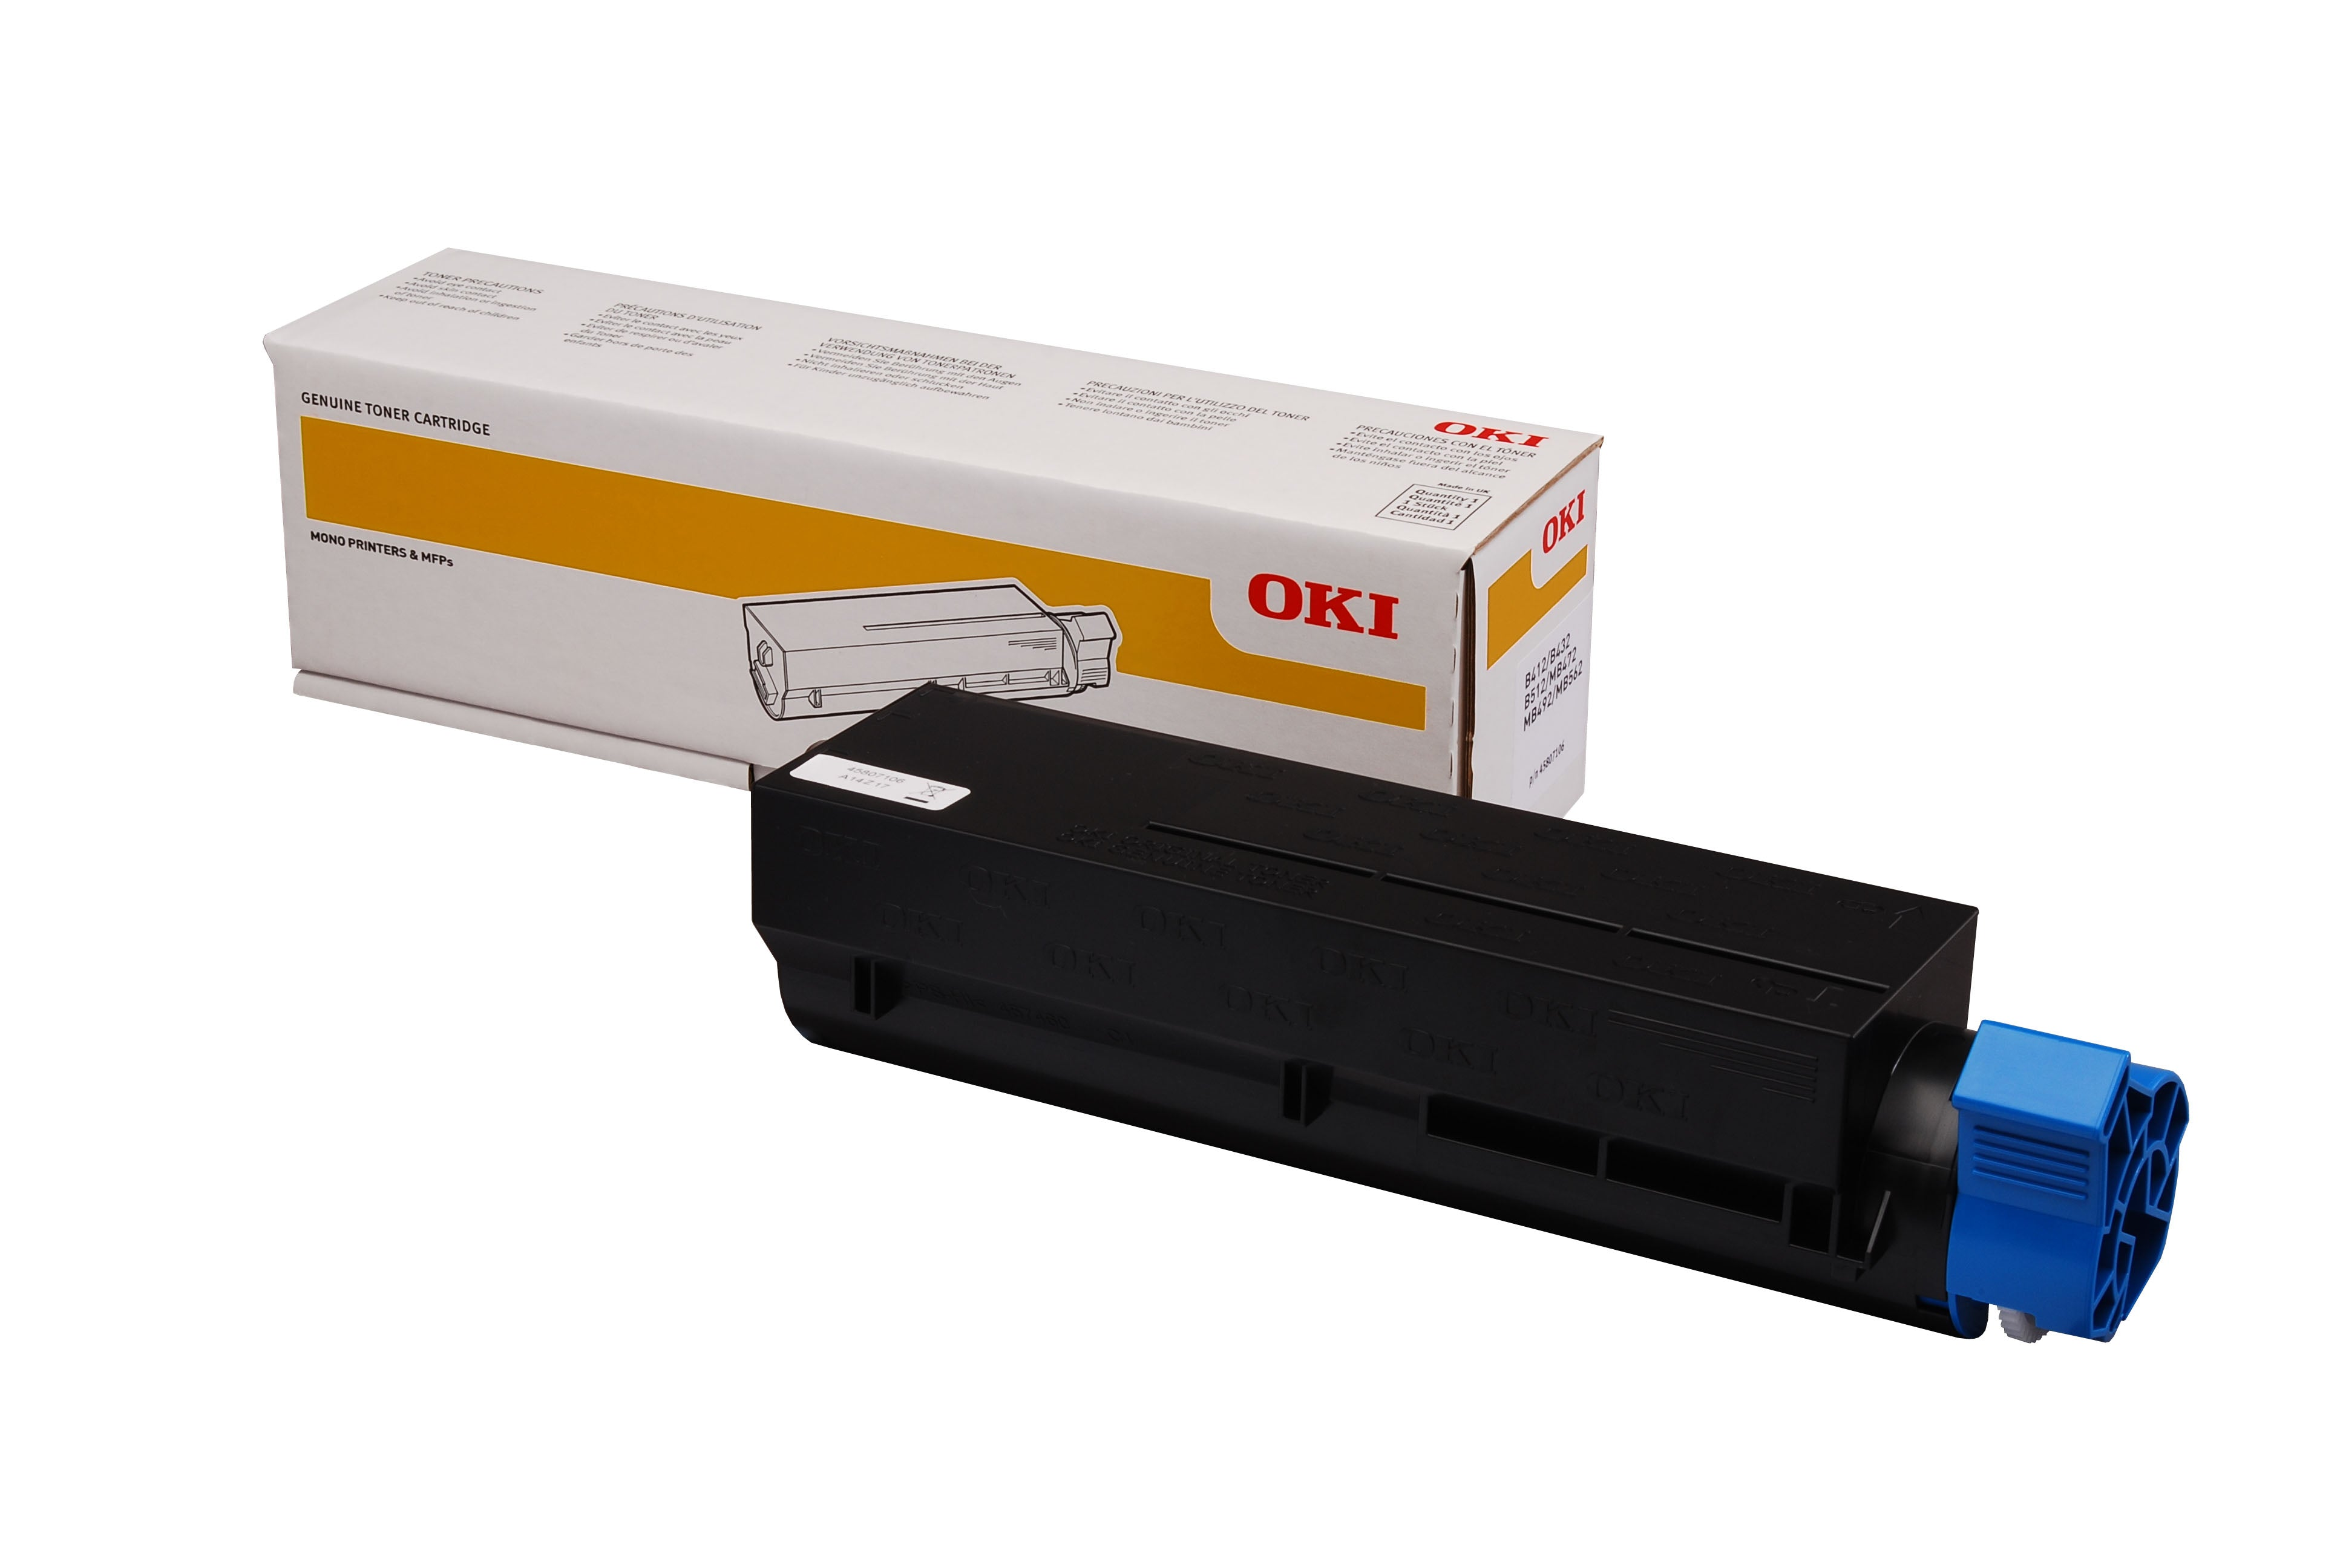 OKI B512dn Black Toner (7,000 Pages) 45807107